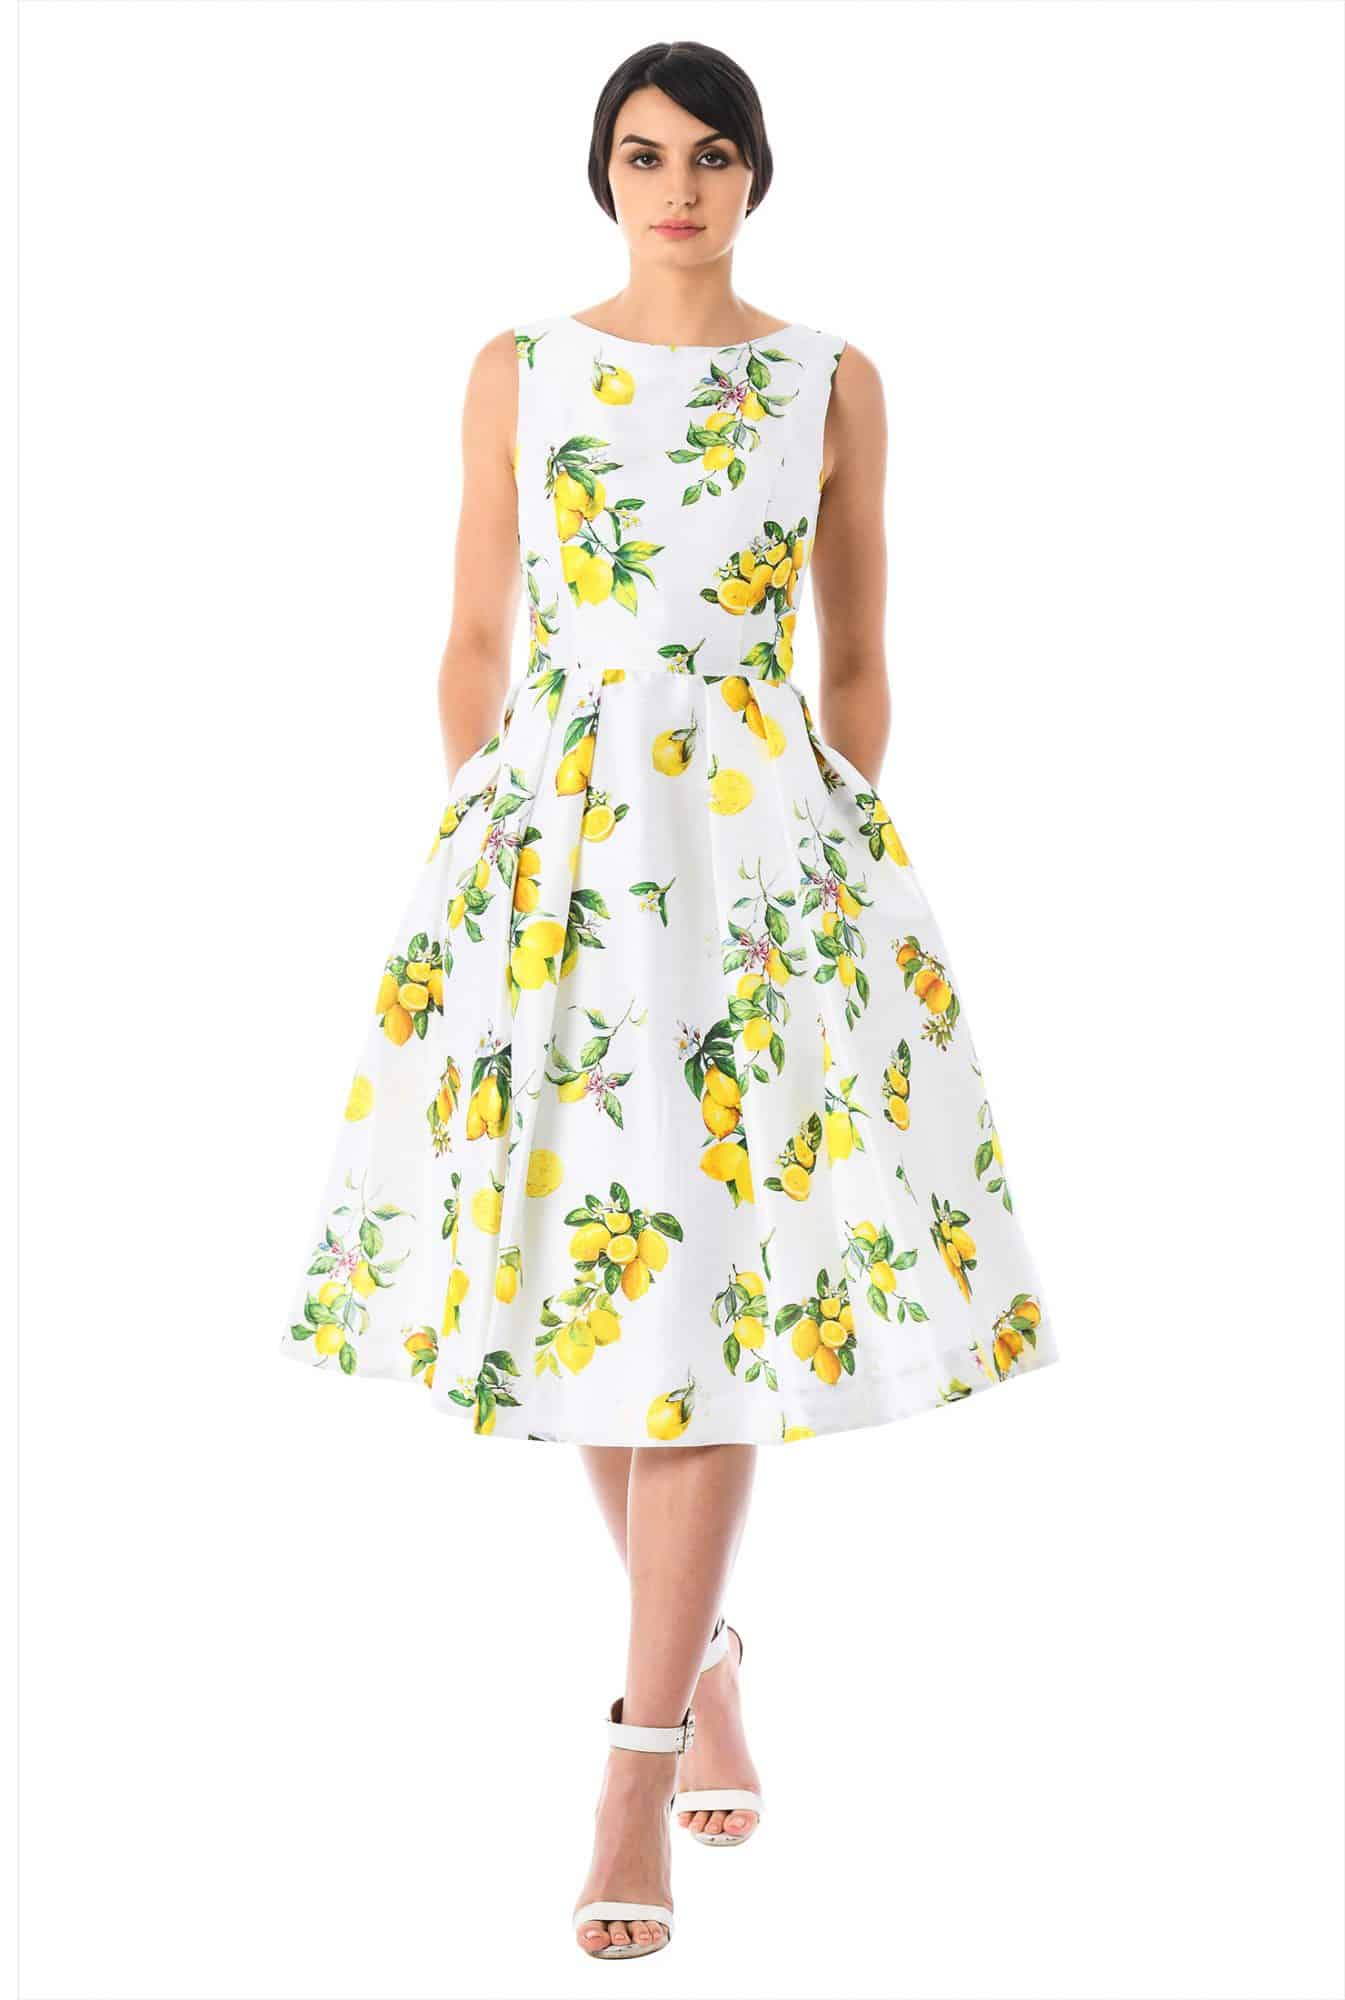 From Church To Wedding To Black Tie Event: Getting Dressy. A white summer dress with lemon and leaves.